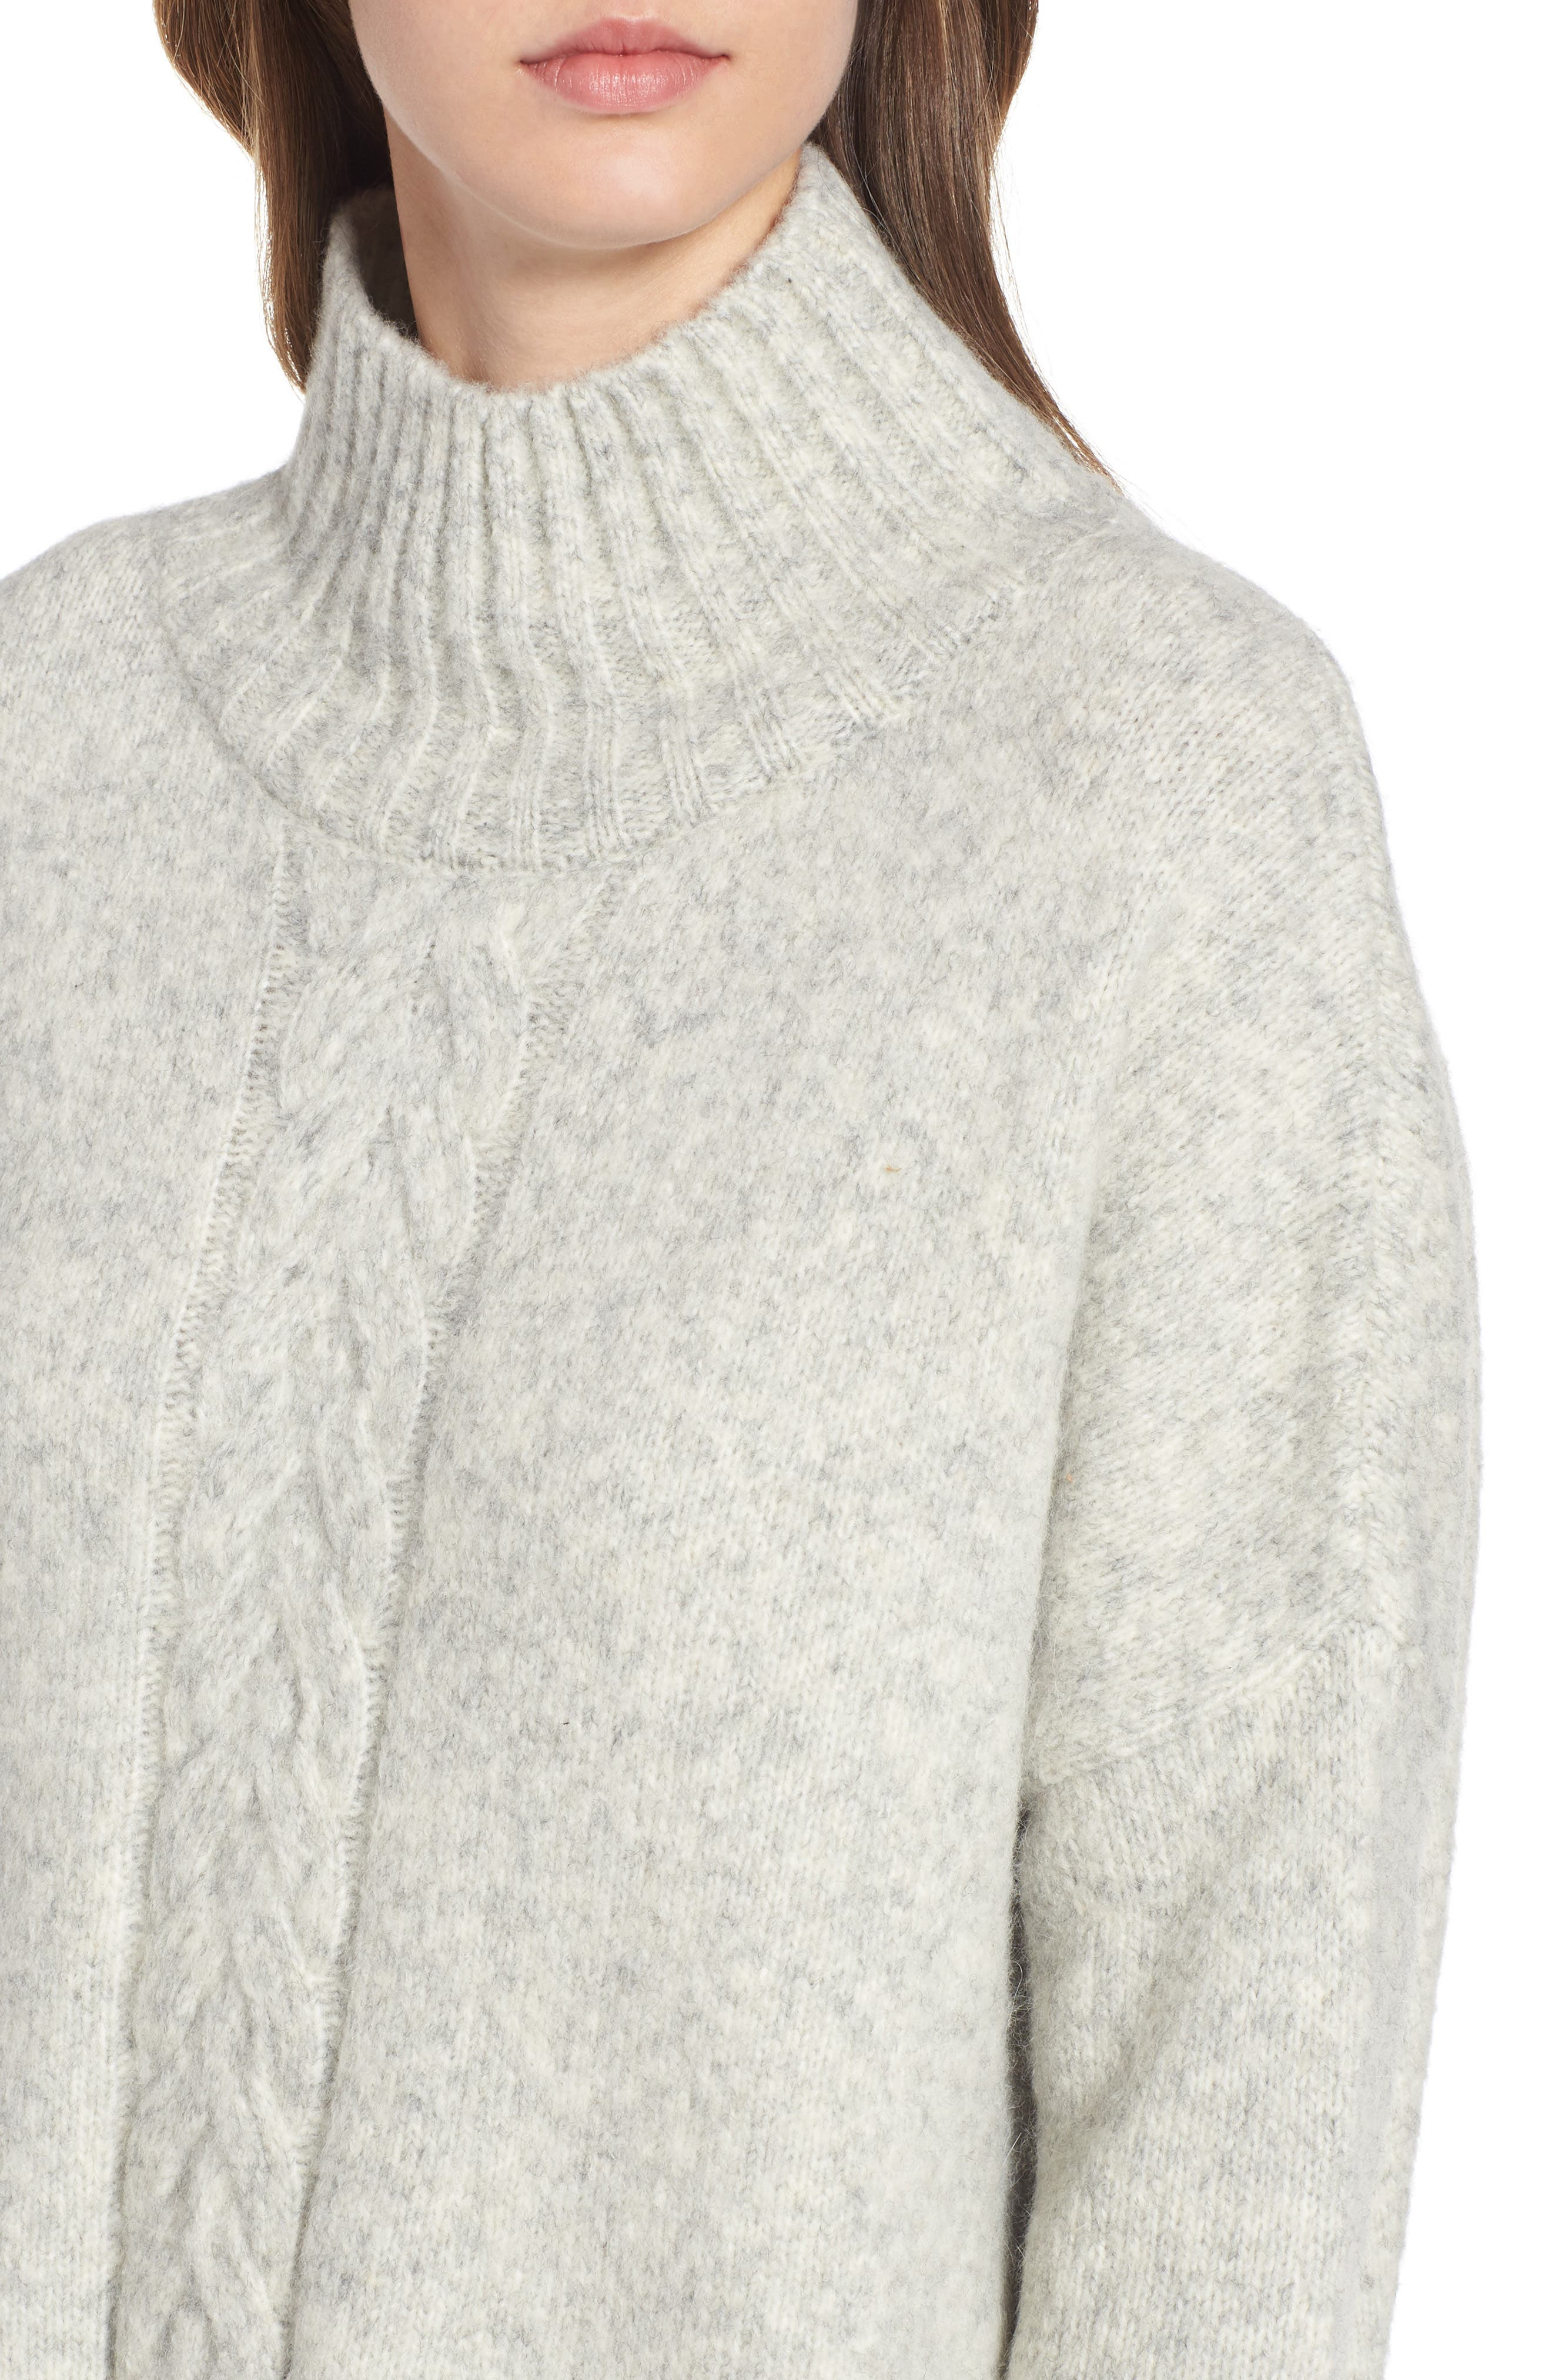 FRENCH CONNECTION, Ora Knit Pullover, Alternate thumbnail 4, color, LIGHT GREY MEL